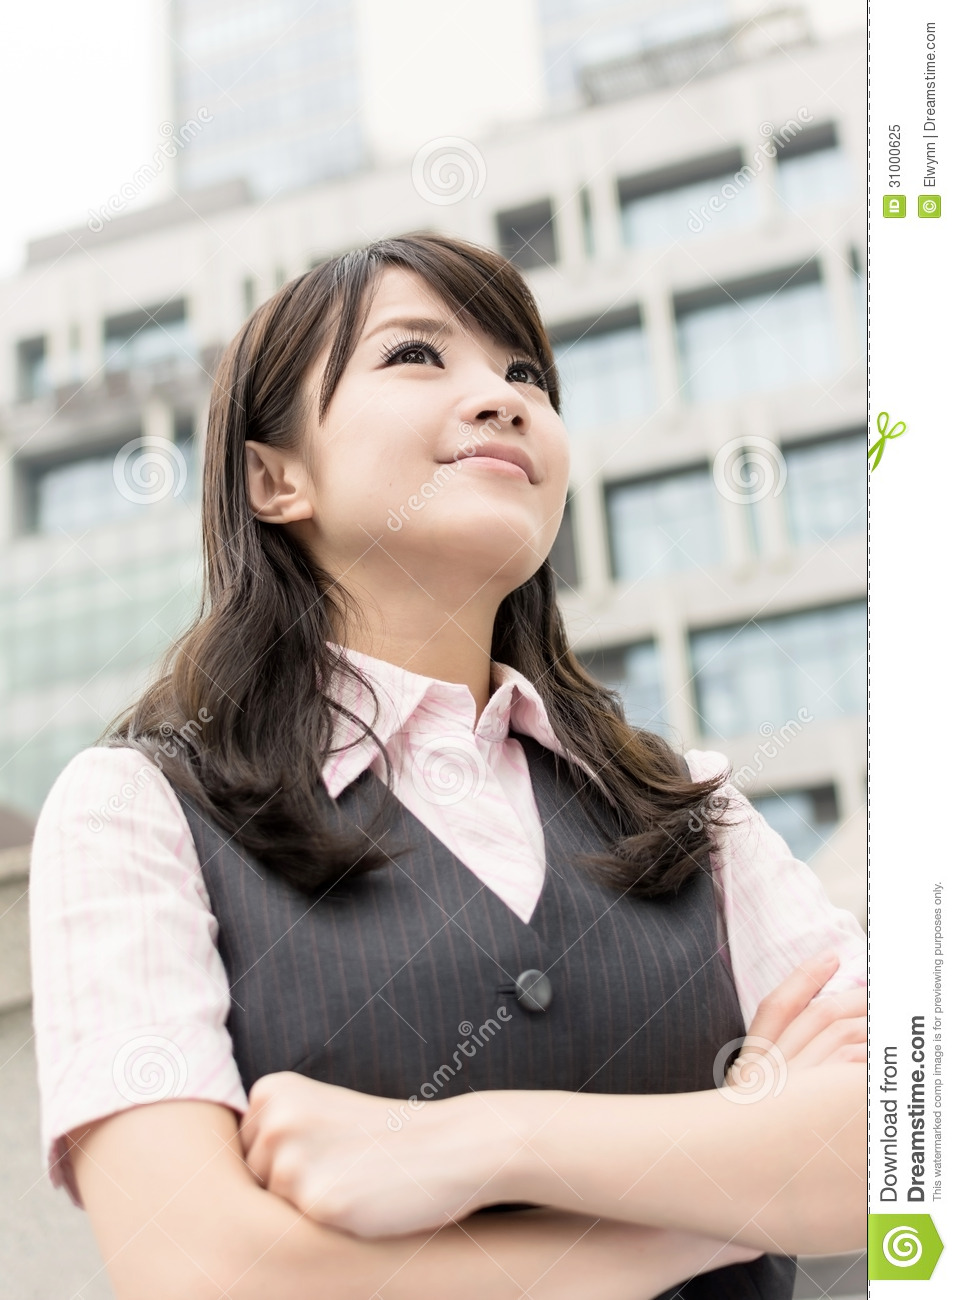 Successful Business Woman Royalty Free Stock Photo - Image ...